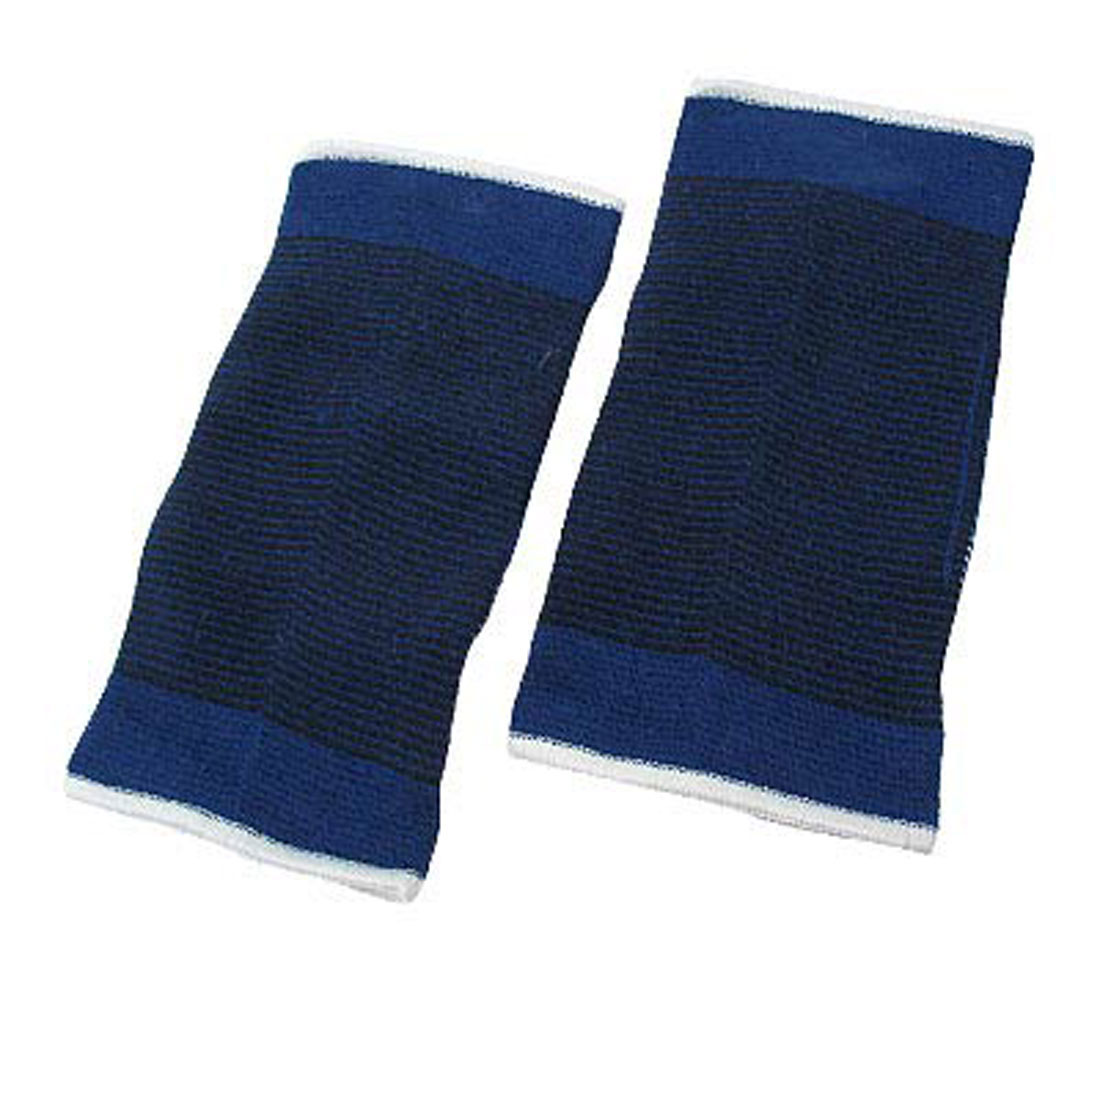 Wrist Support Brace Pad Wrap Band for Wrist Blue